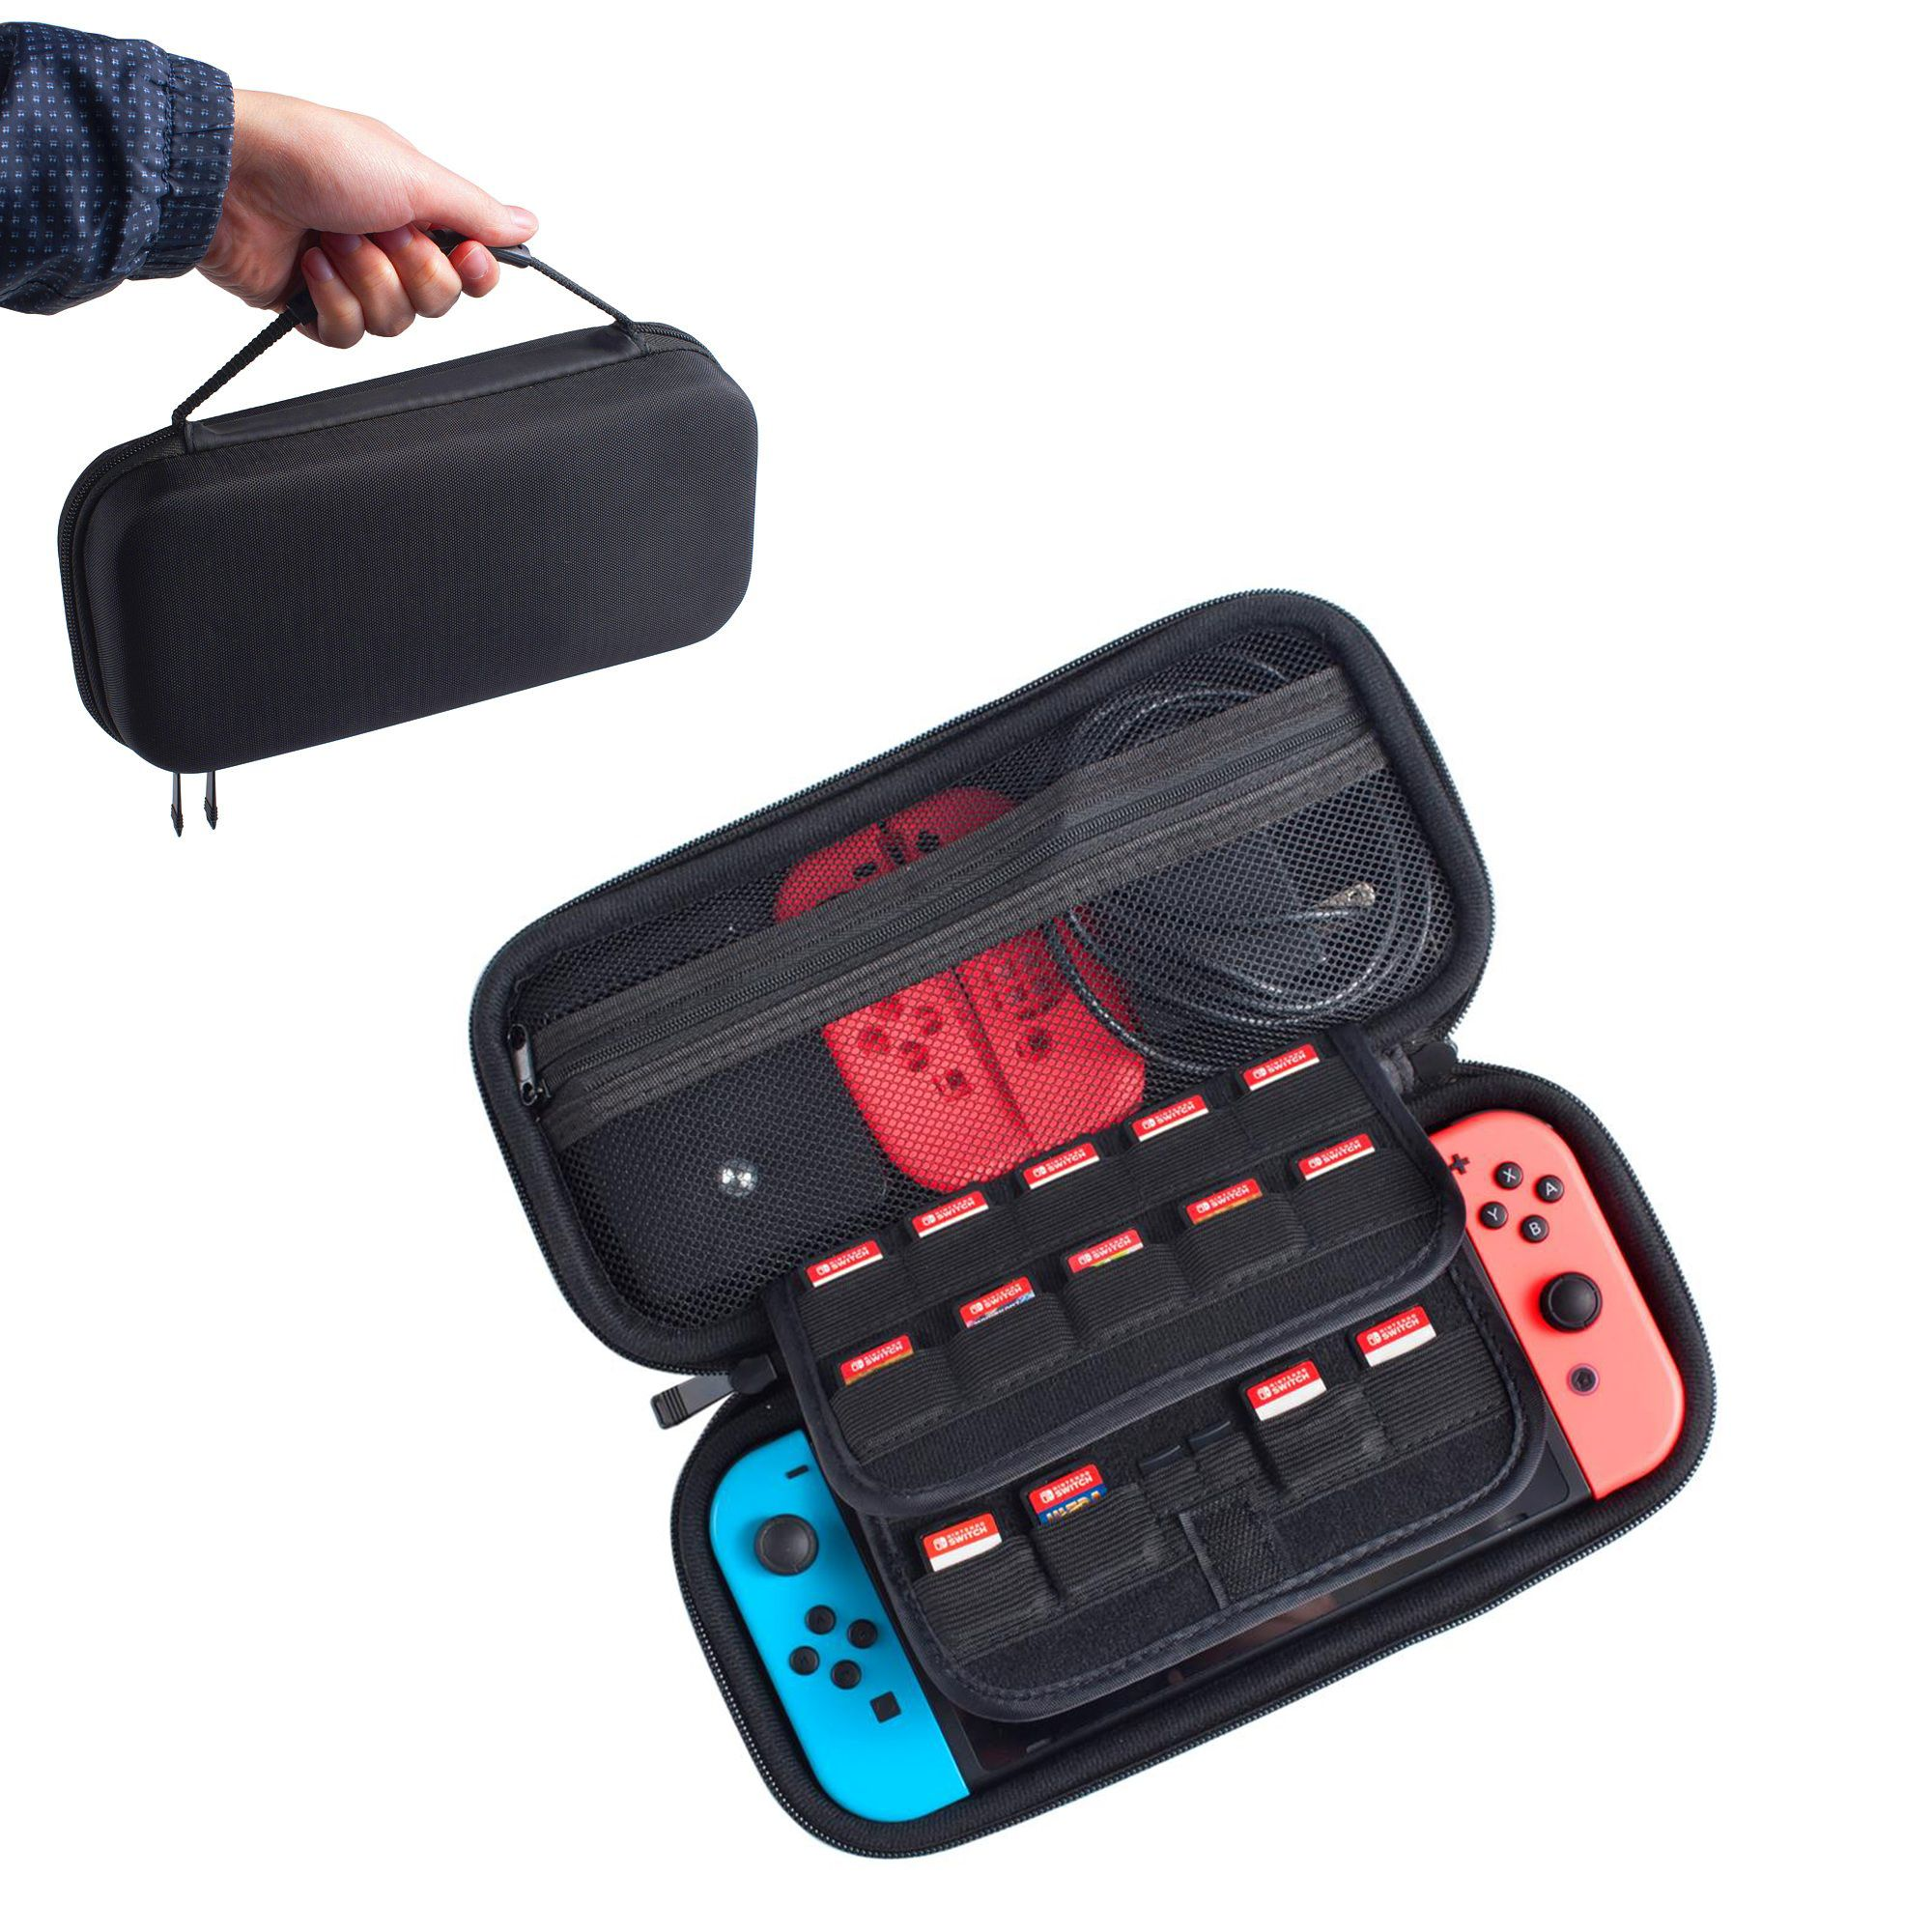 Nintendo Switch Case [29 Game Cart Slots Holder] by Insten Portable Hard Carry Case Zip Bag Pouch for Nintendo Switch Accessories - Game Travel Case Carrying Case Protective Cover, Black